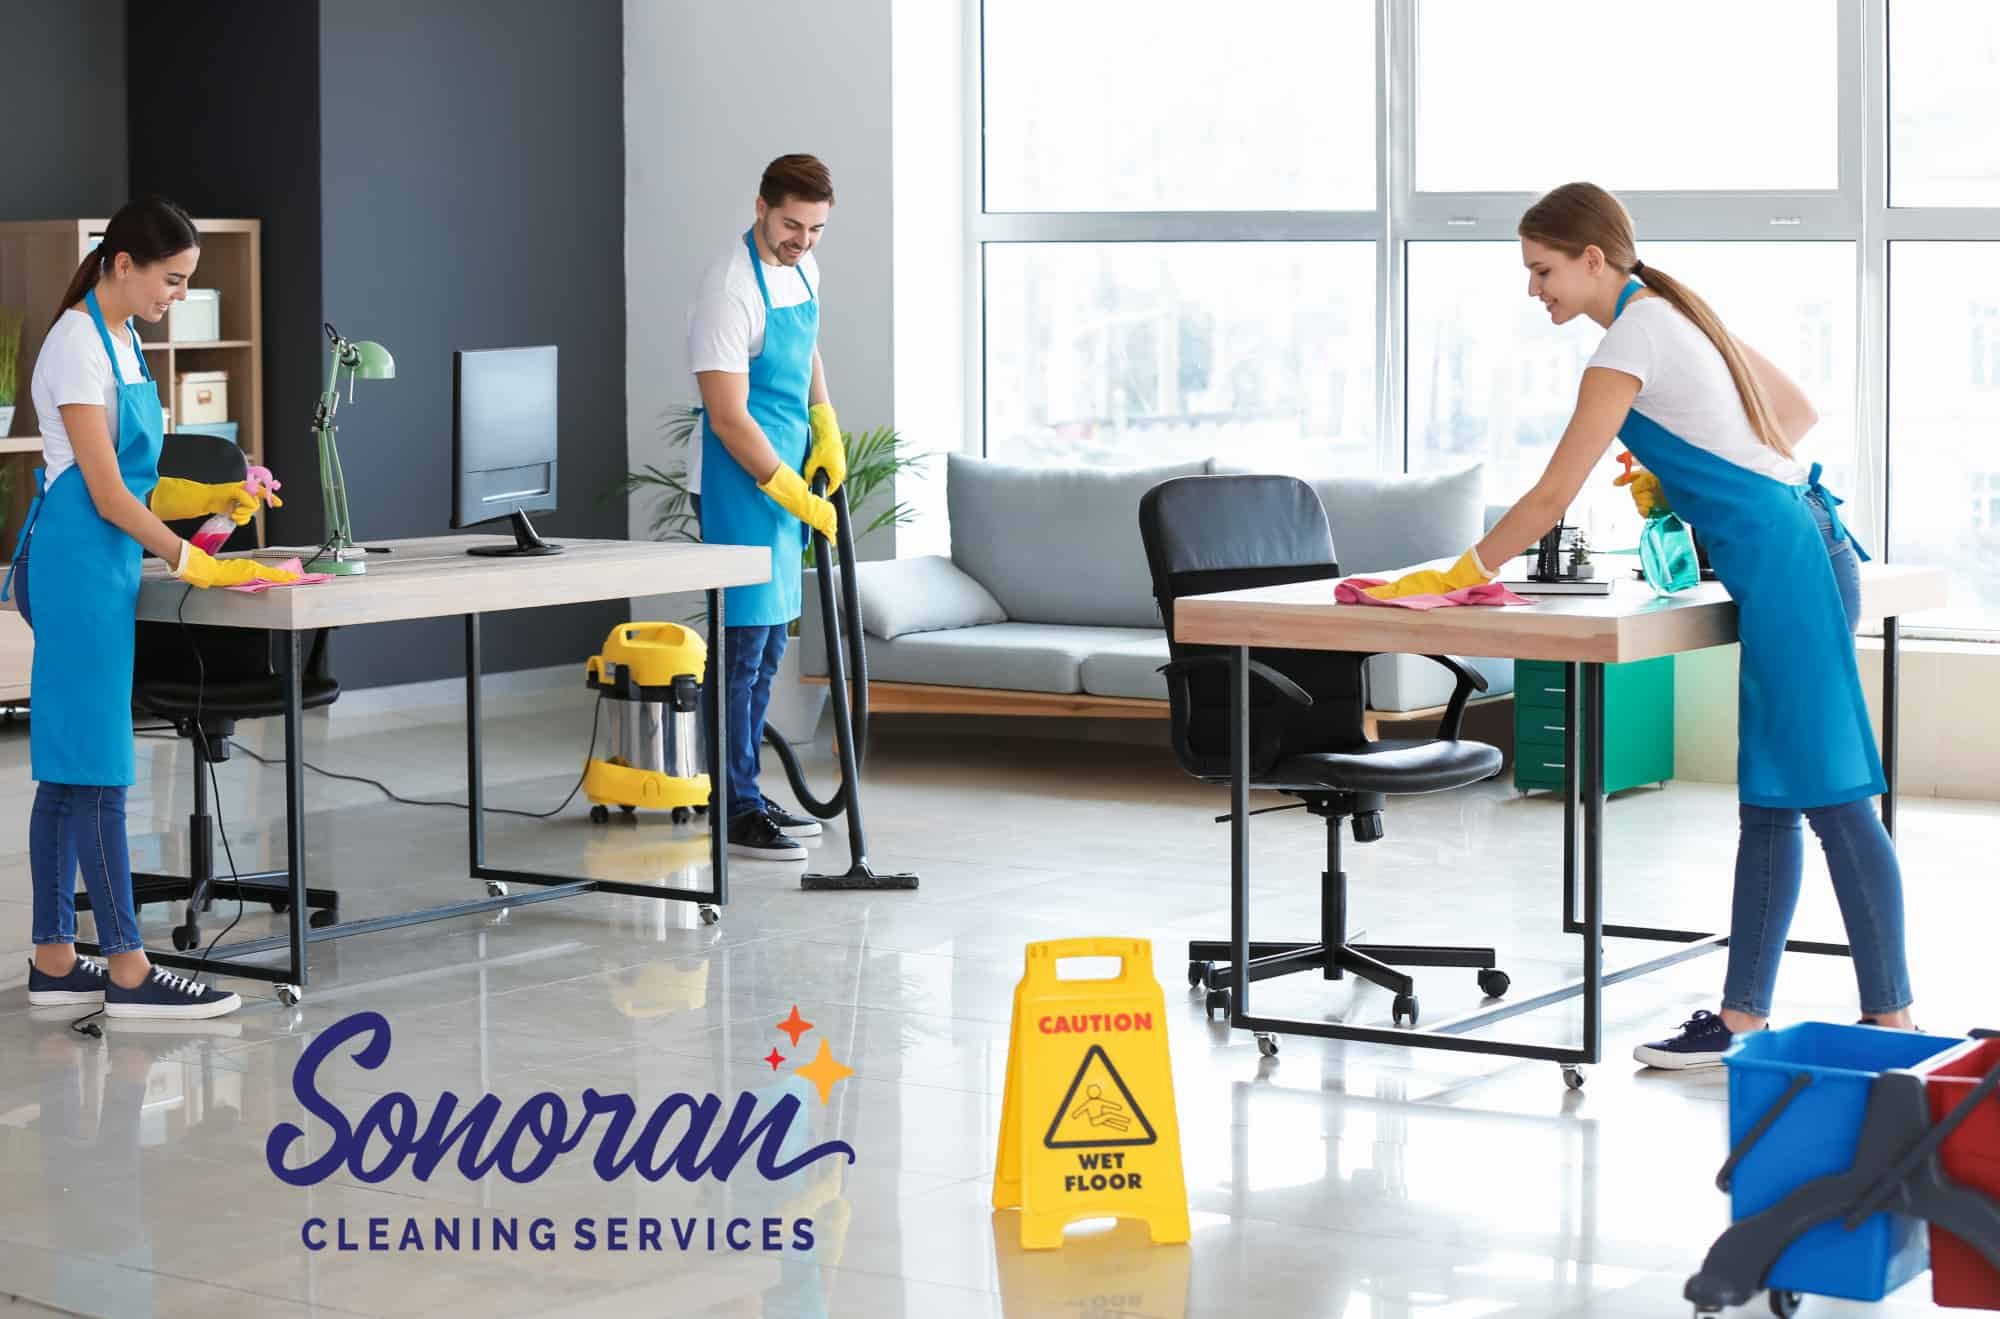 cleaning with logo